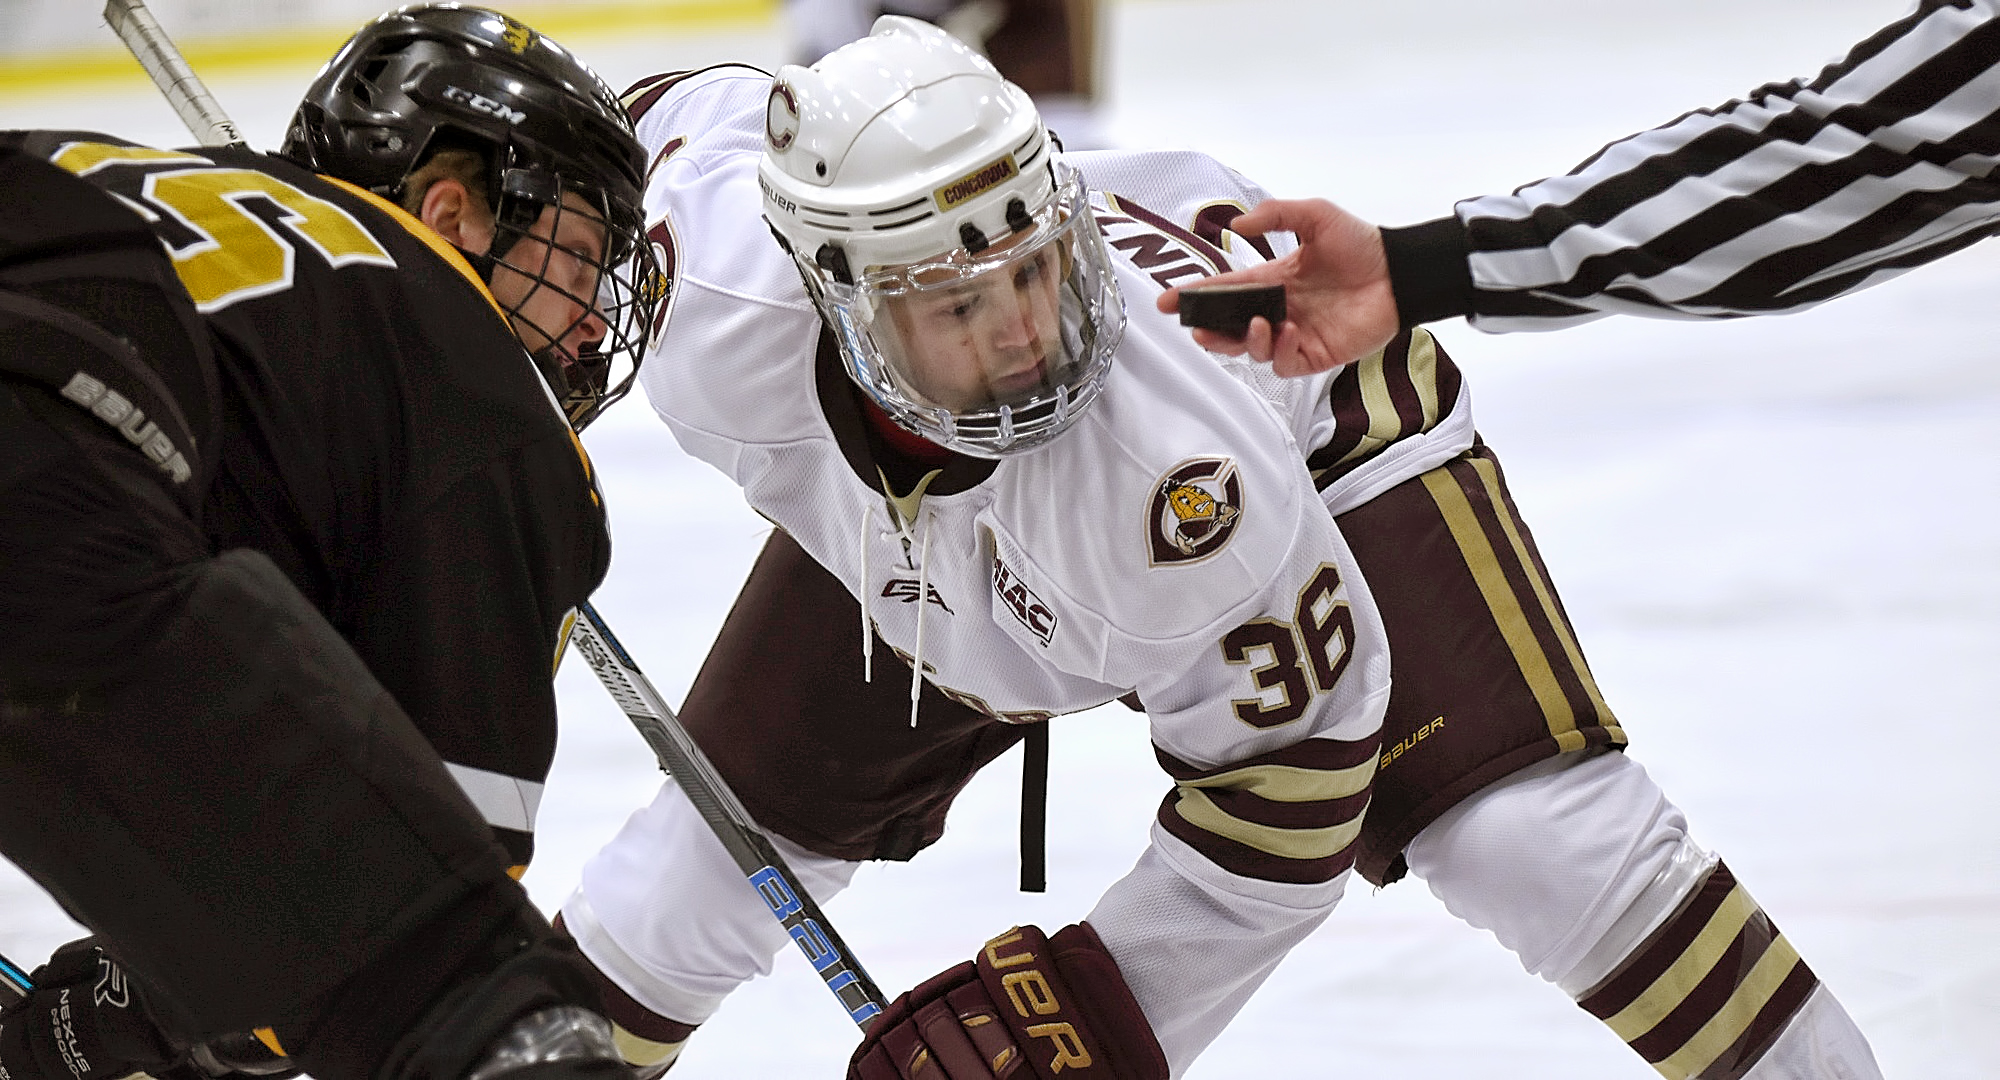 Sophomore Brock Montgomery scored his first collegiate goal in the Cobbers' regular-season finale at Augsburg.